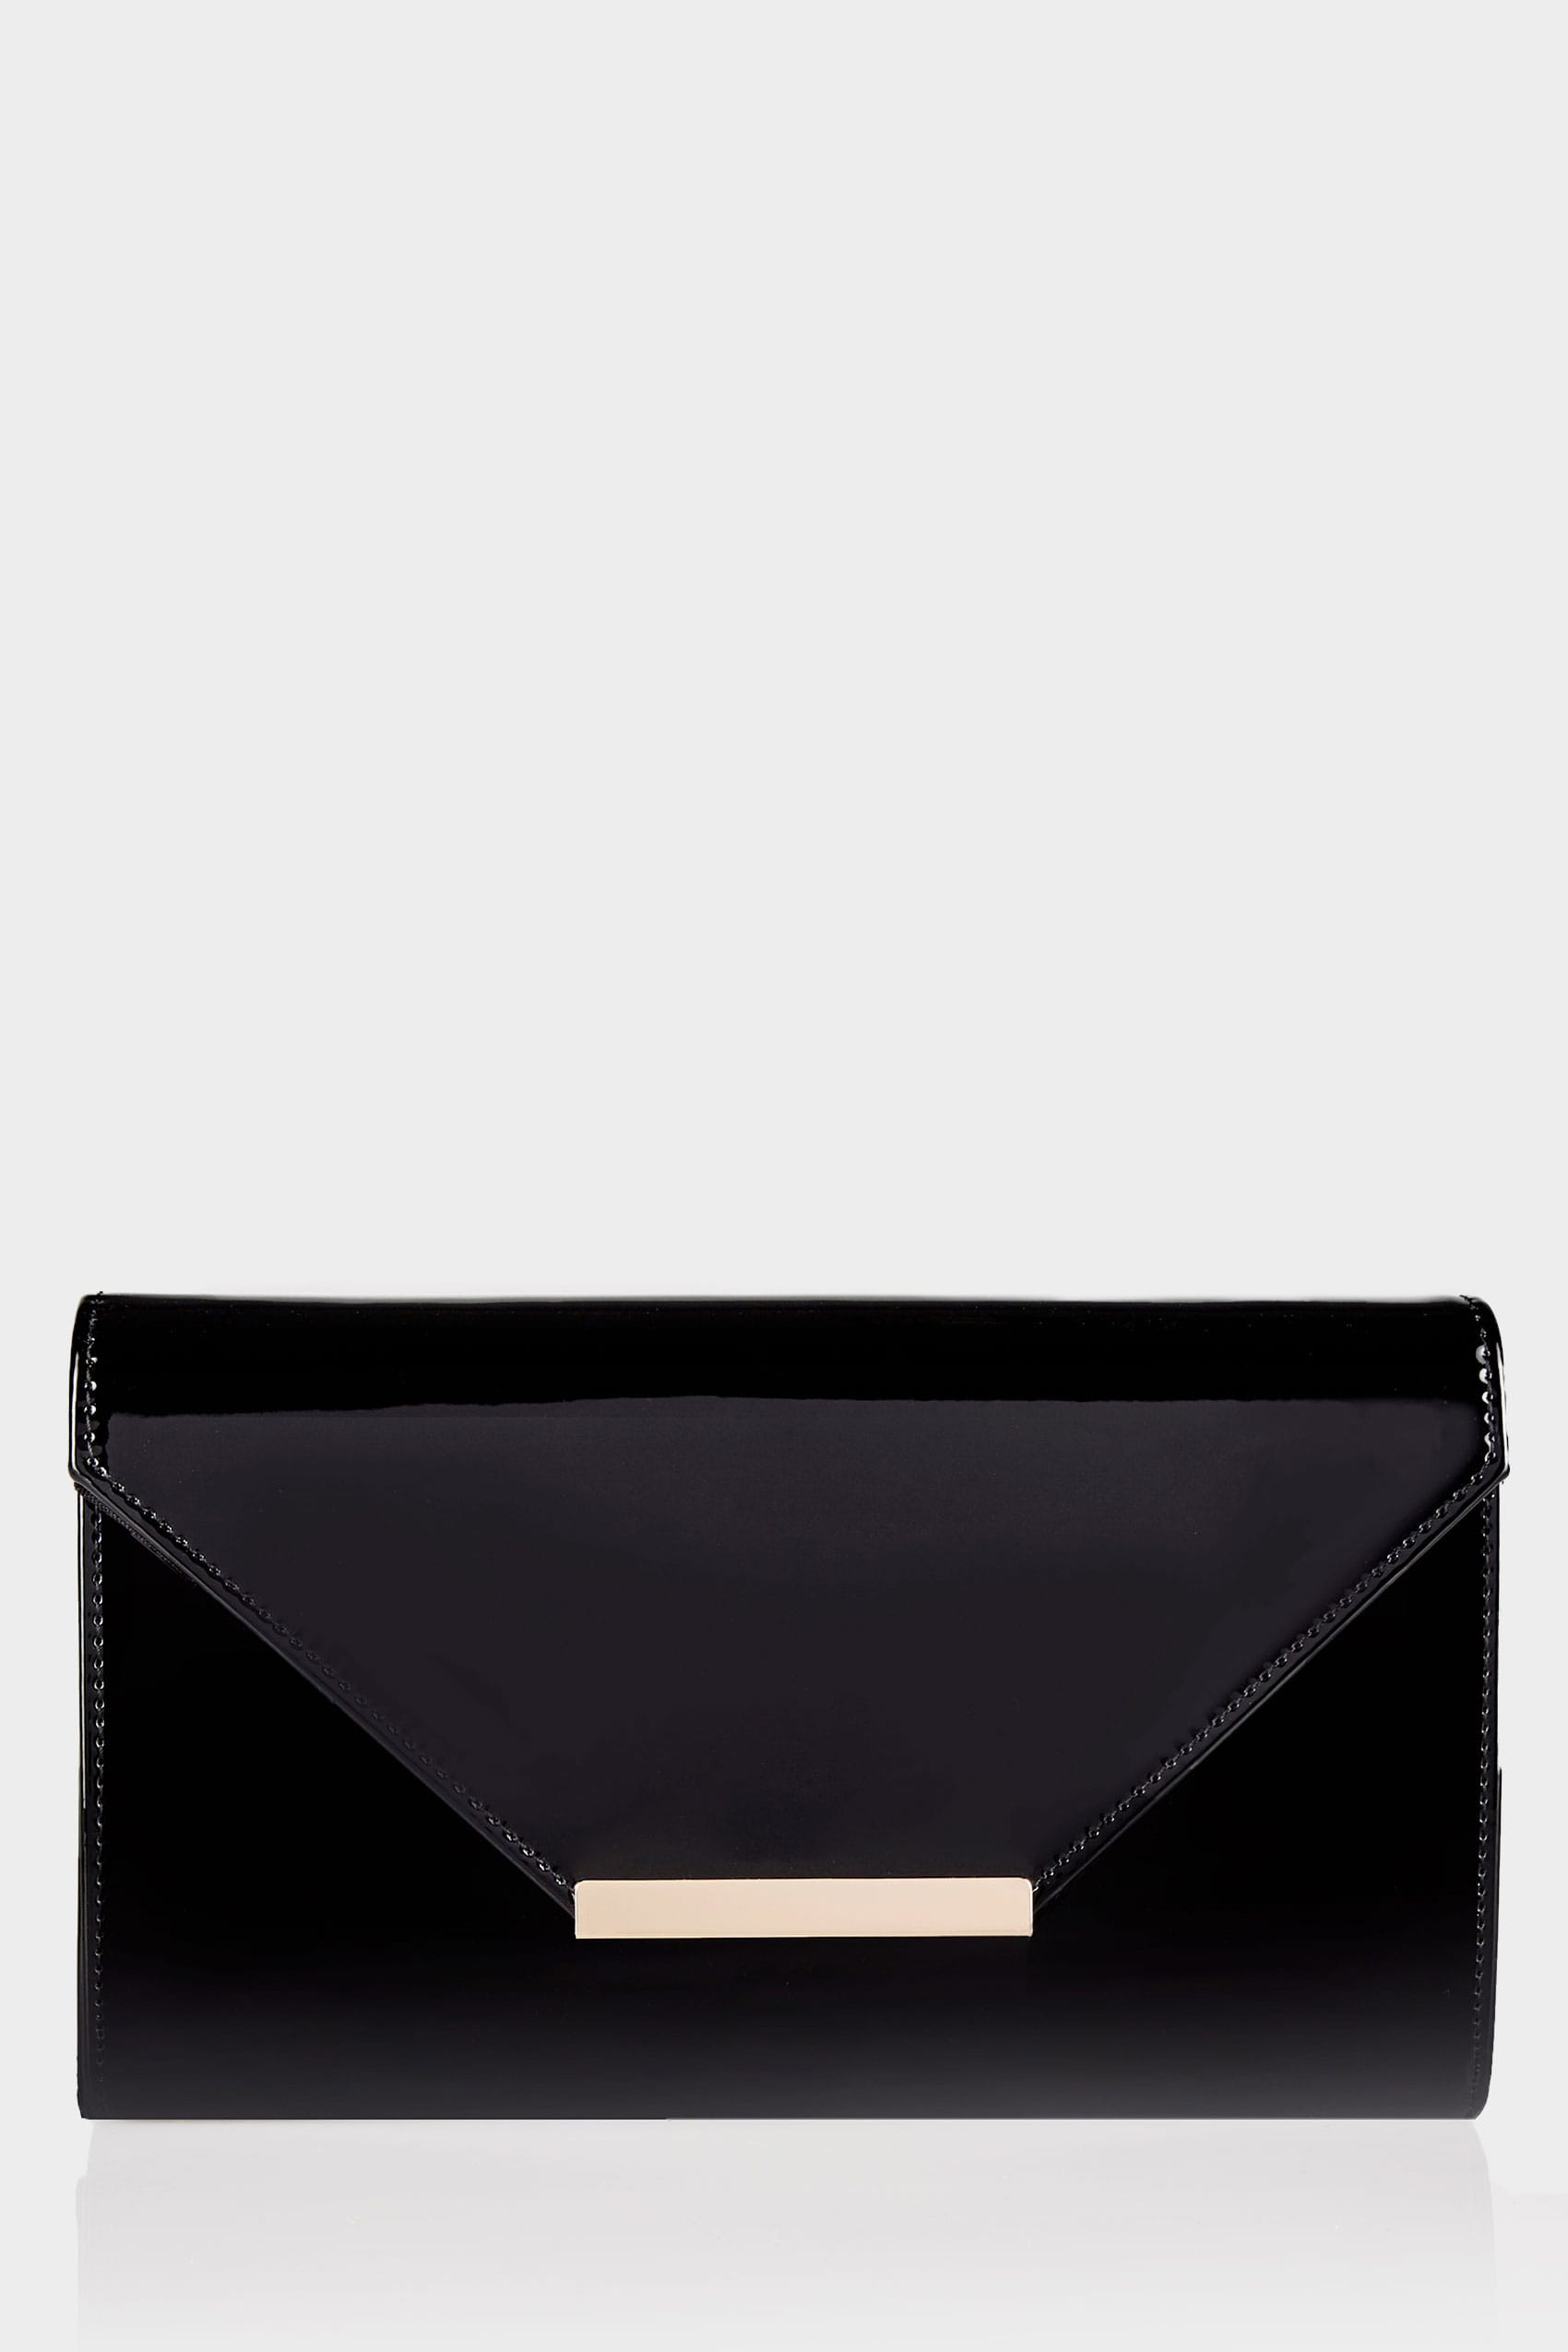 Schwarze clutch tasche mit schultertr ger for Terms and conditions template for online shop